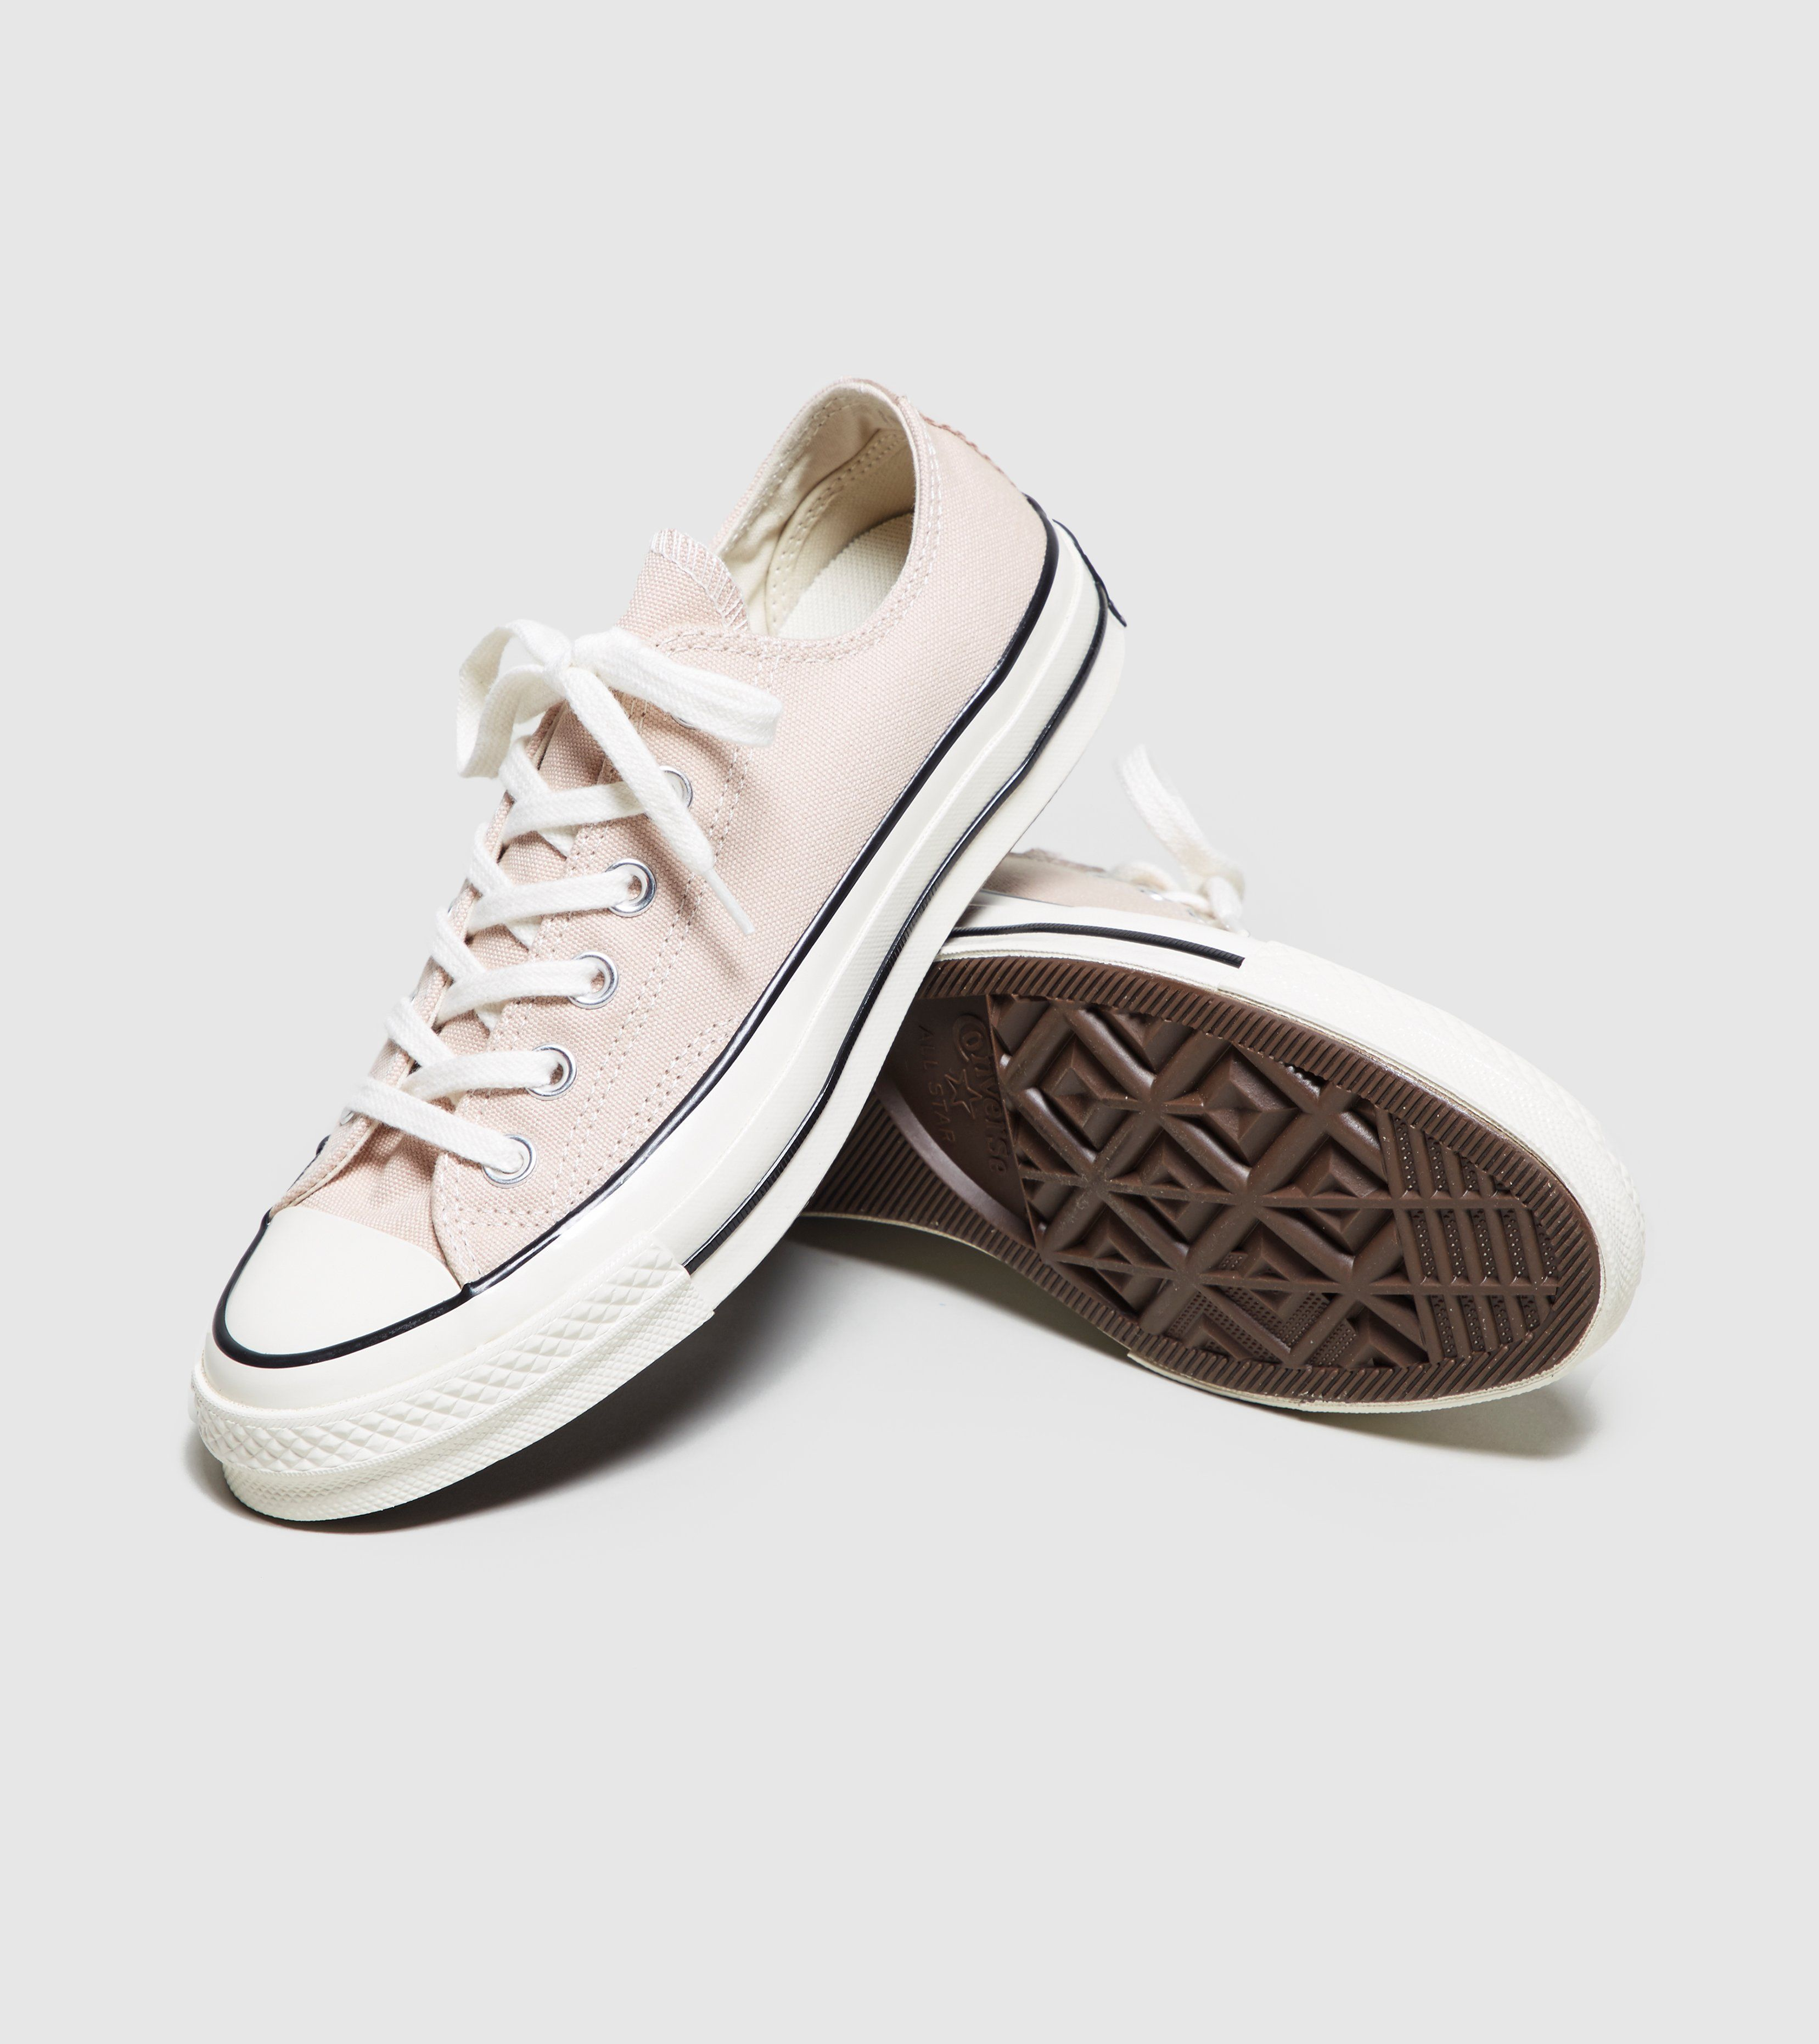 Converse Chuck Taylor All Star '70 Low Women's